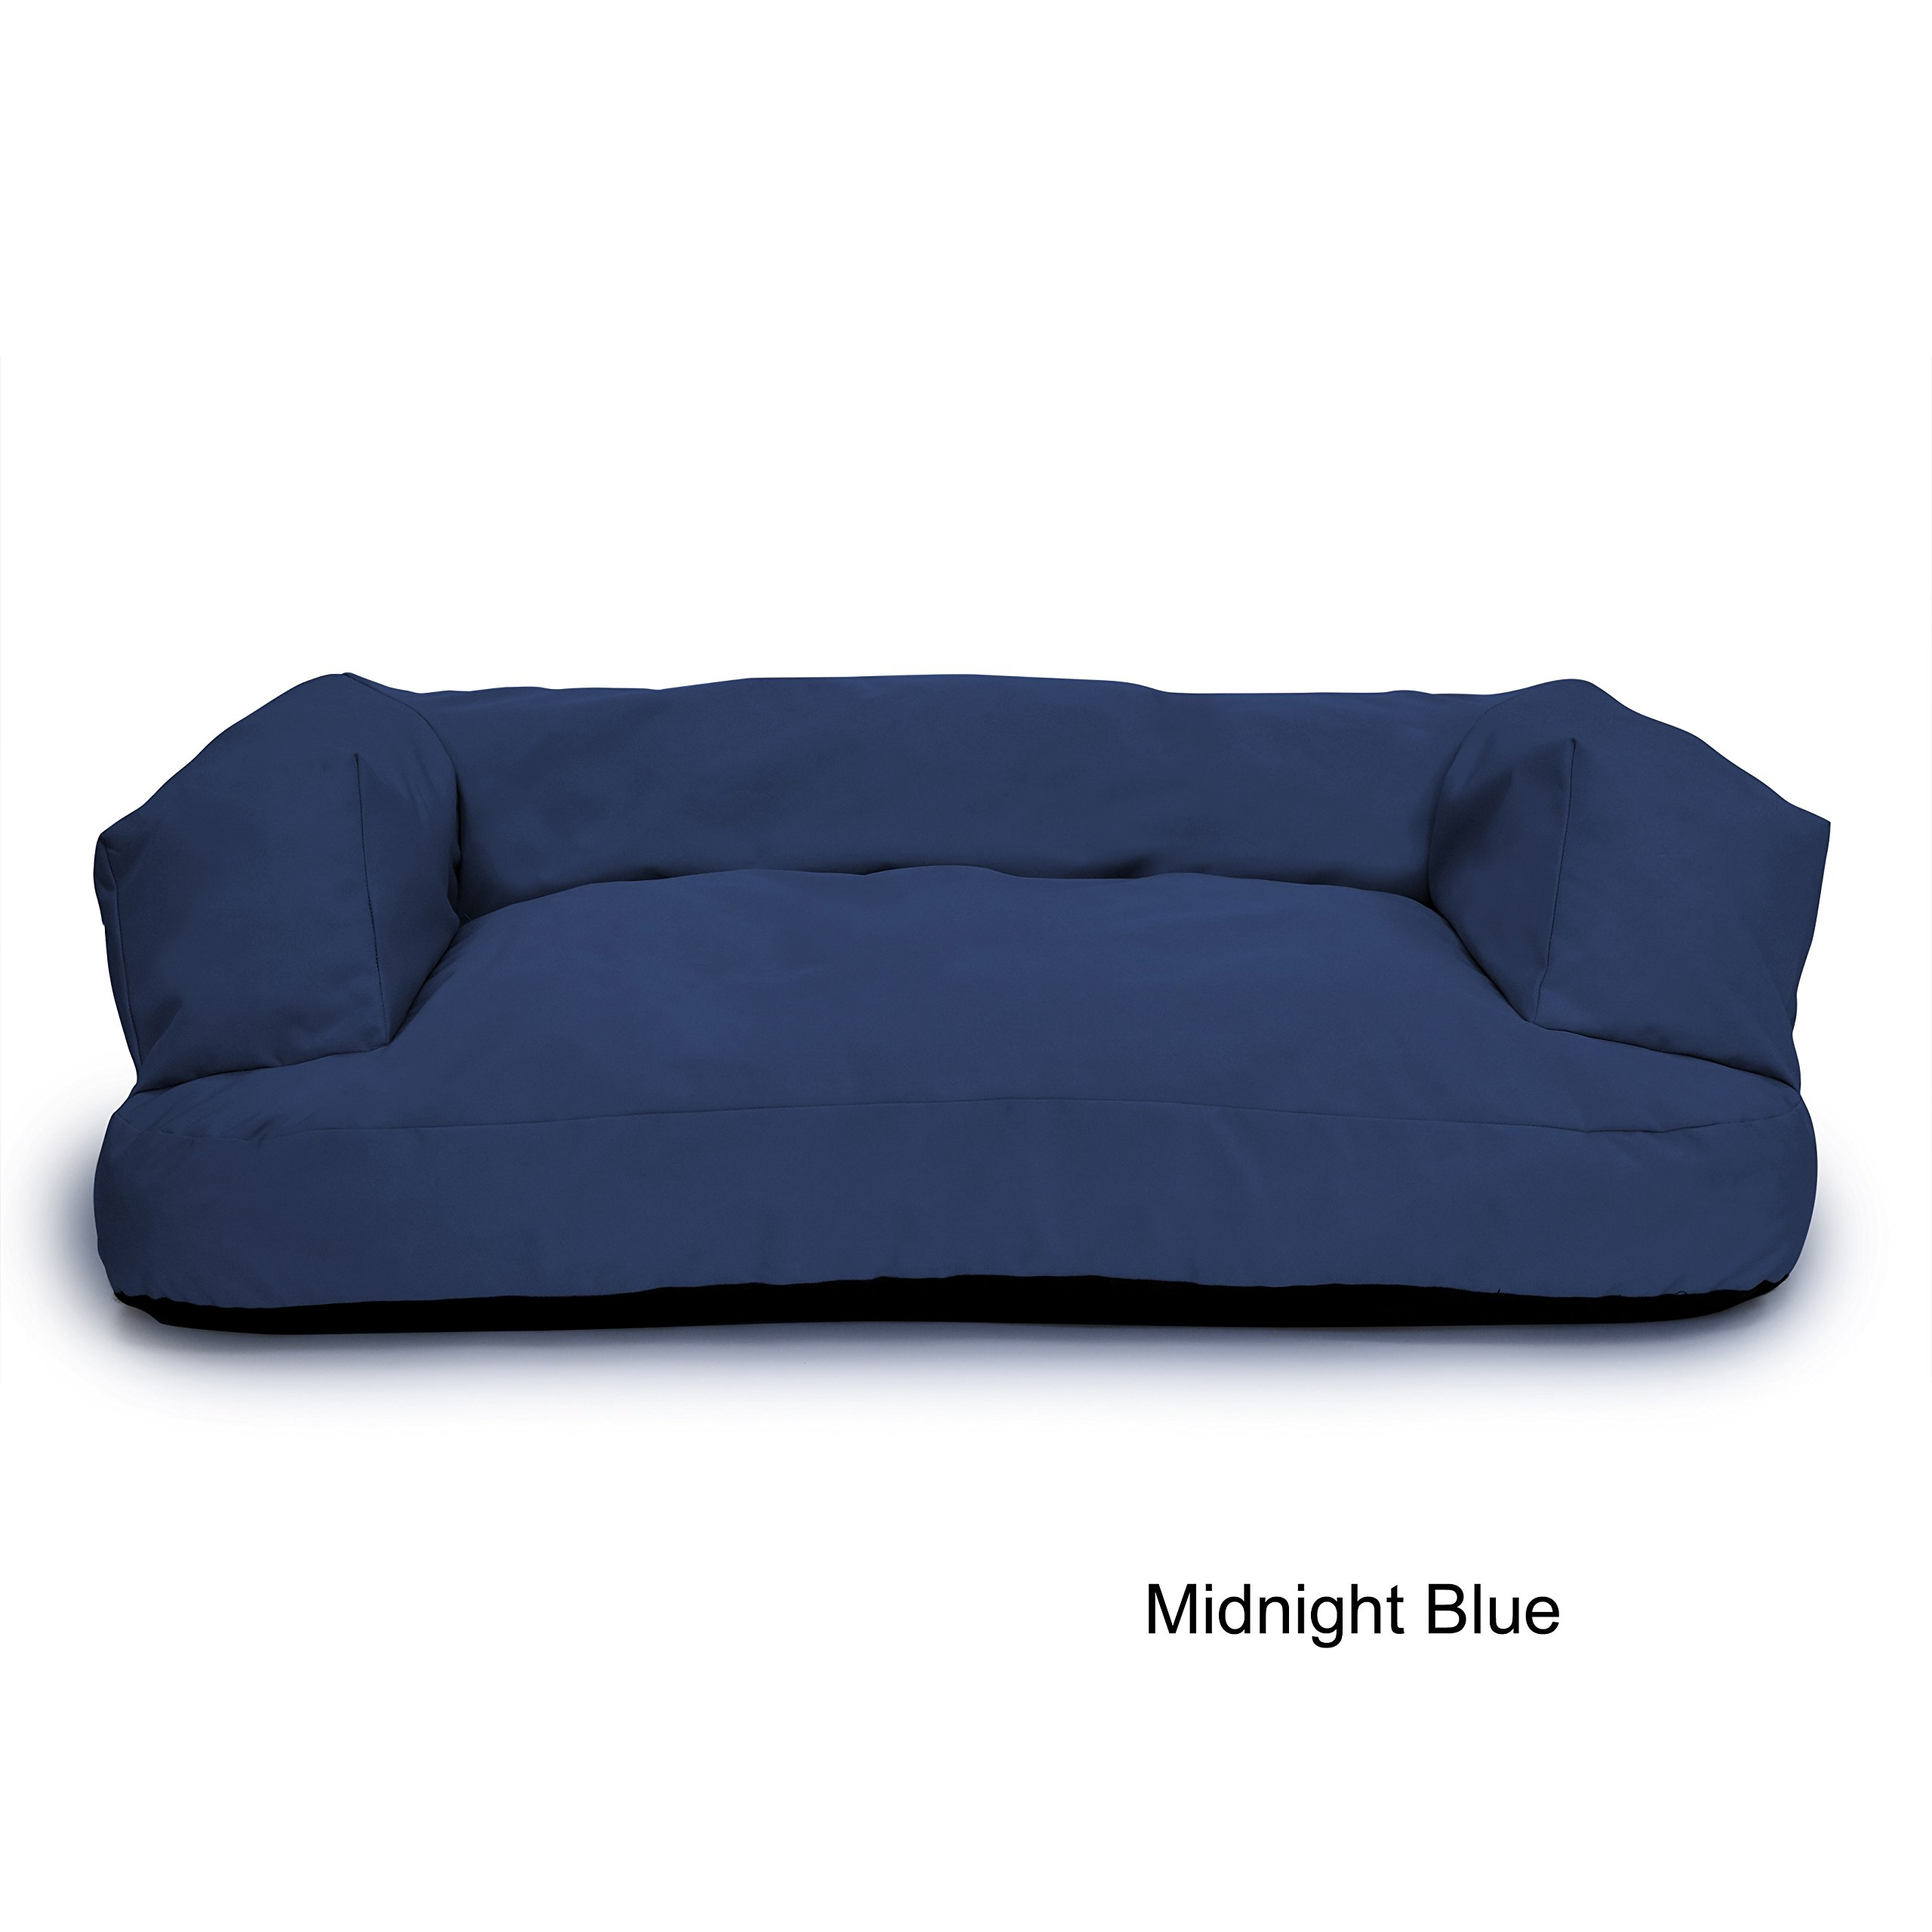 Integrity Bedding Indoor/Outdoor Chew-Resistant 6-inch Memory Foam Dog Couch and Bed Blue Extra Large